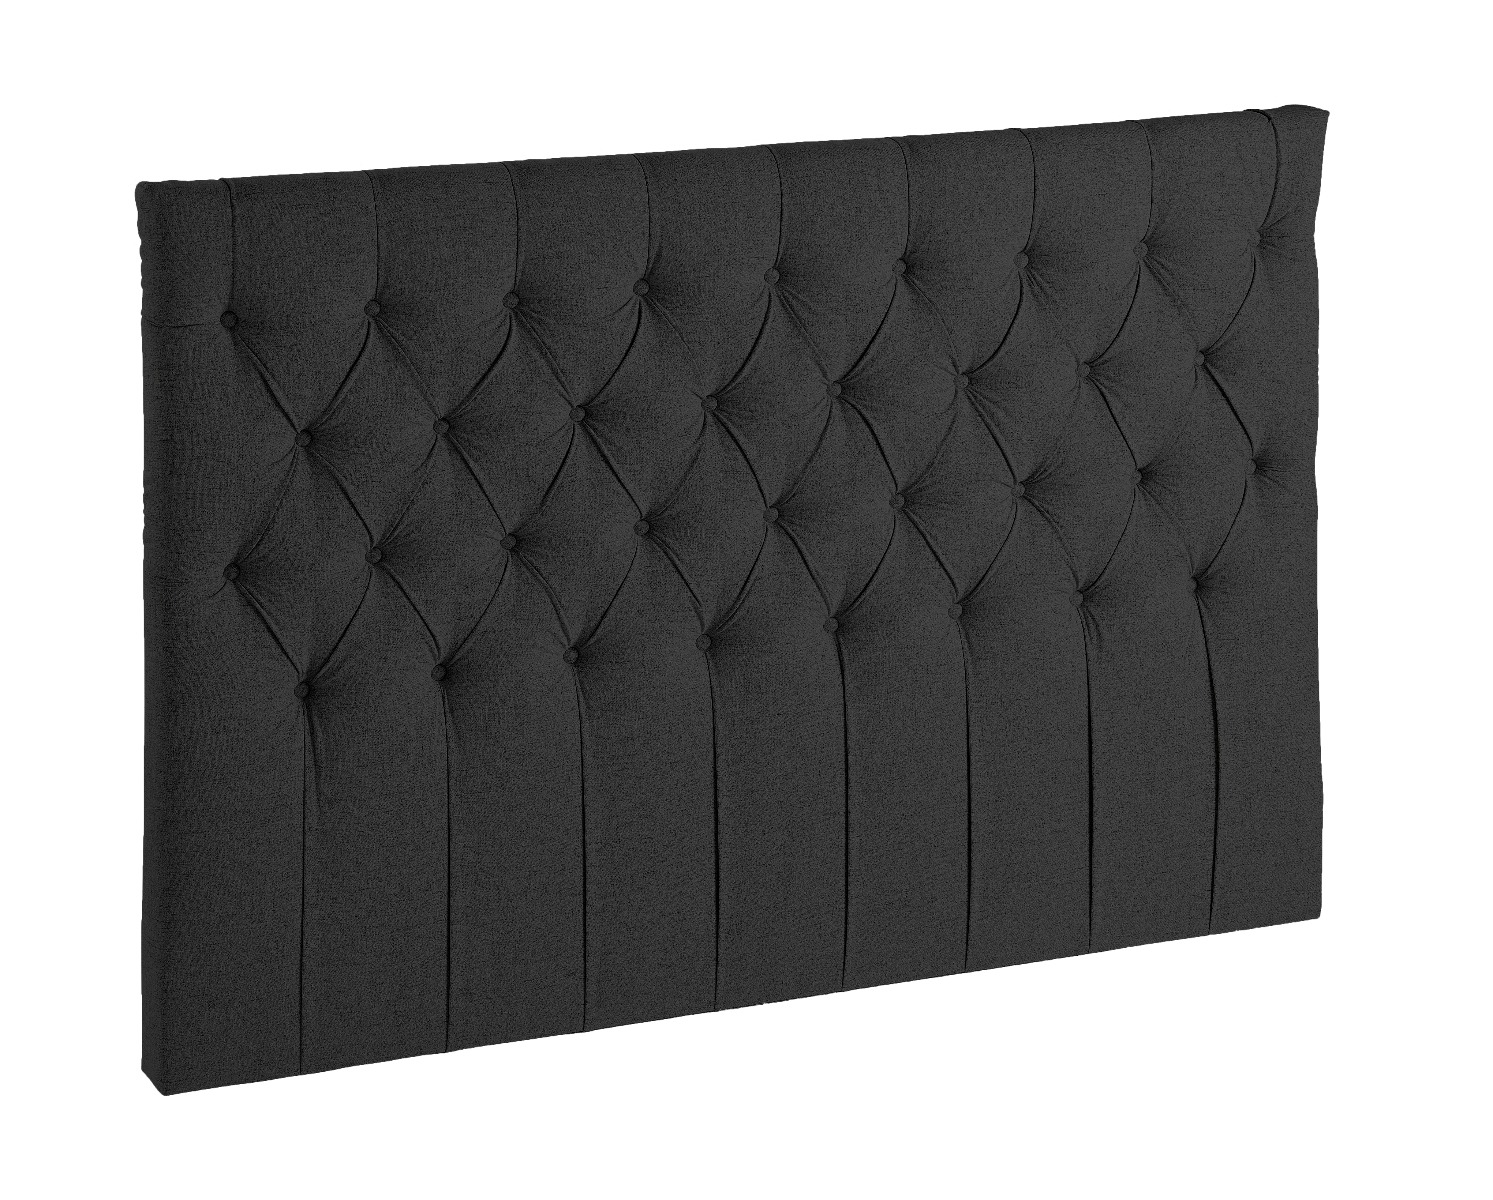 Image of Senses Lux Gavl Chesterfield - 180 x 120 (6875)